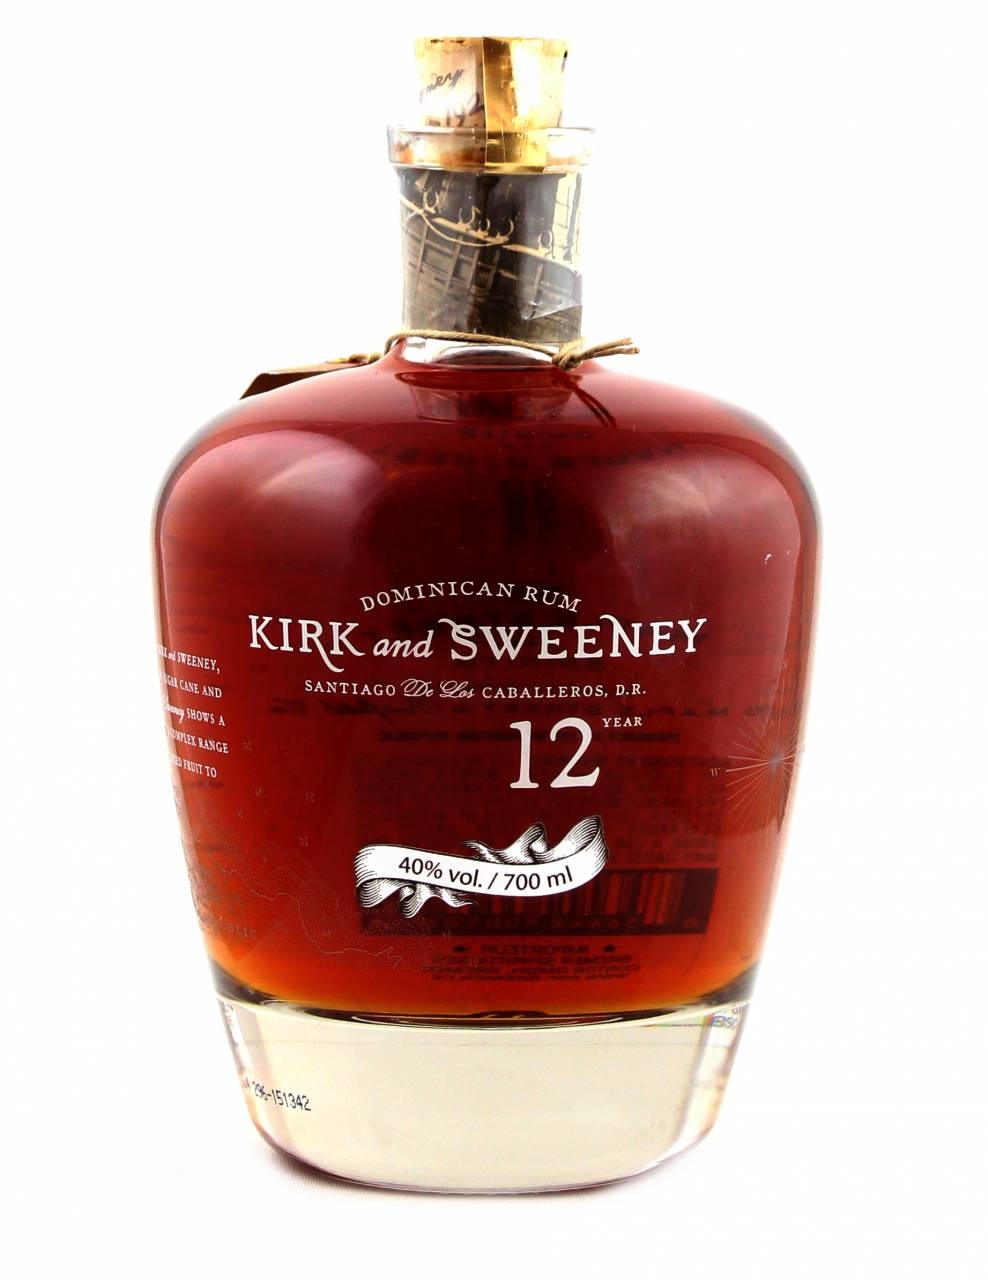 Kirk and Sweeney 12 Jahre Dominican Rum 0,7 Liter